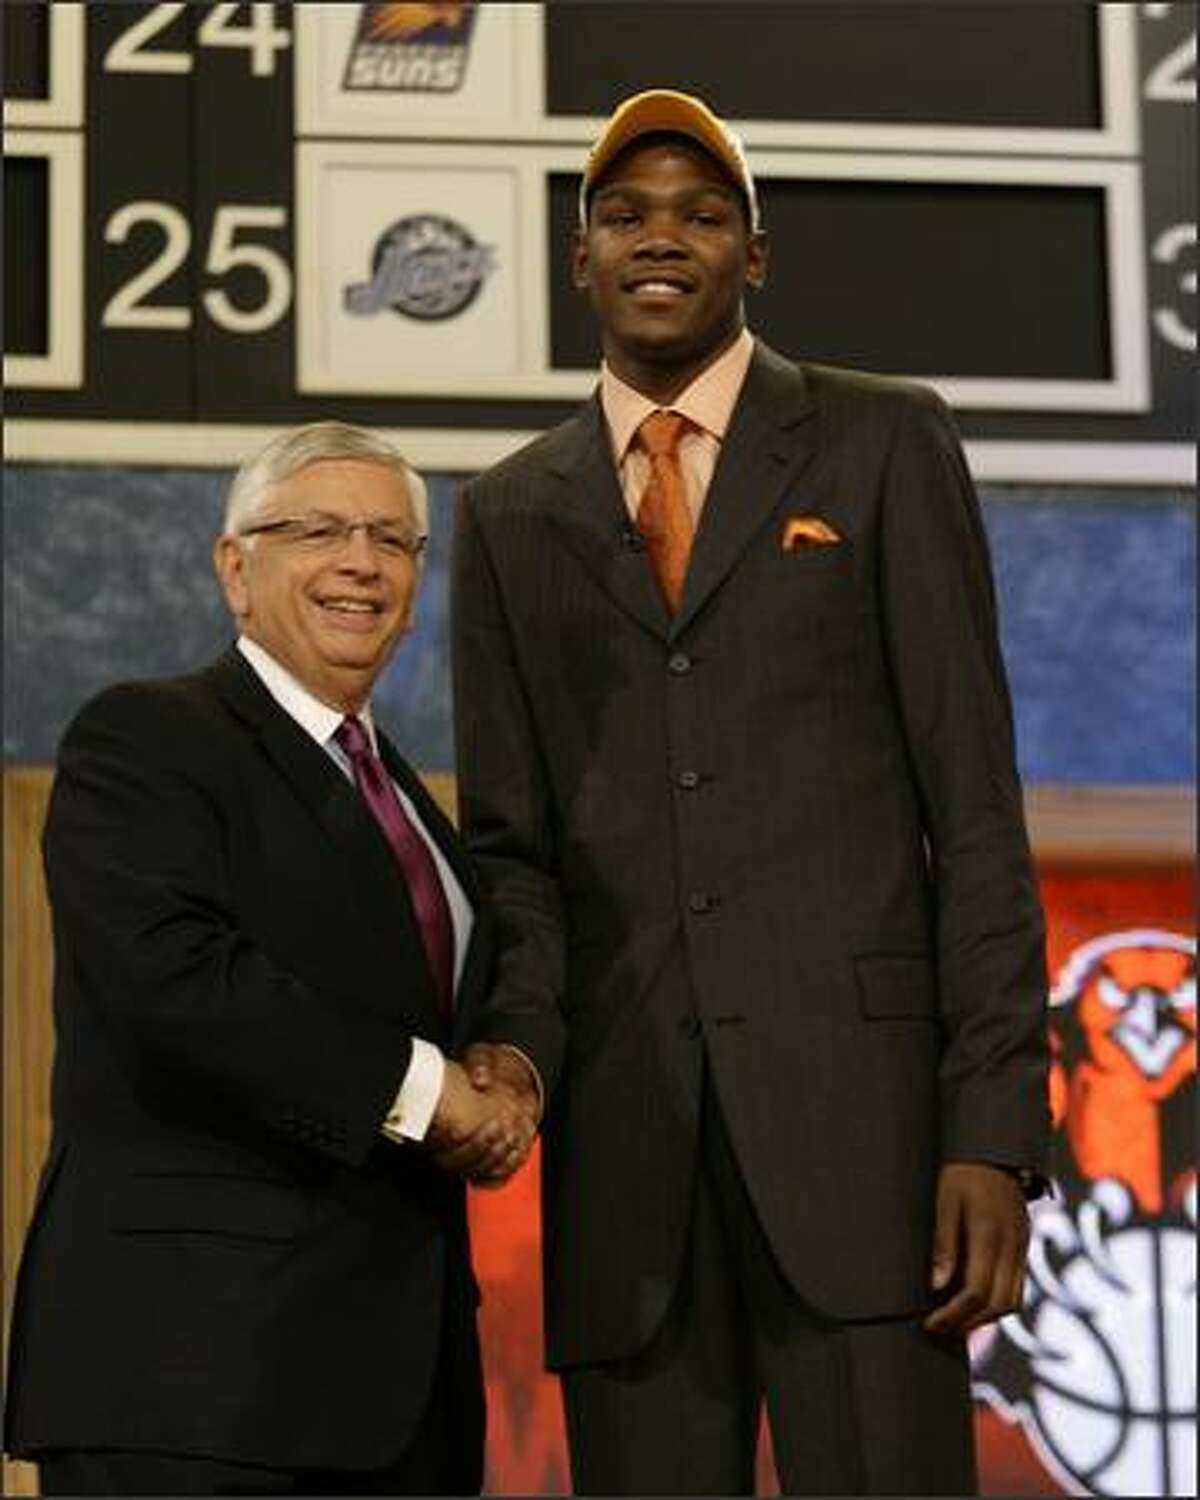 Texas' Kevin Durant, right shakes hands with NBA commissioner David Stern after being selected by the Seattle SuperSonics as the second overall pick in the 2007 NBA Draft, Thursday, June 28, 2007, in New York. (AP Photo/Kathy Willens)